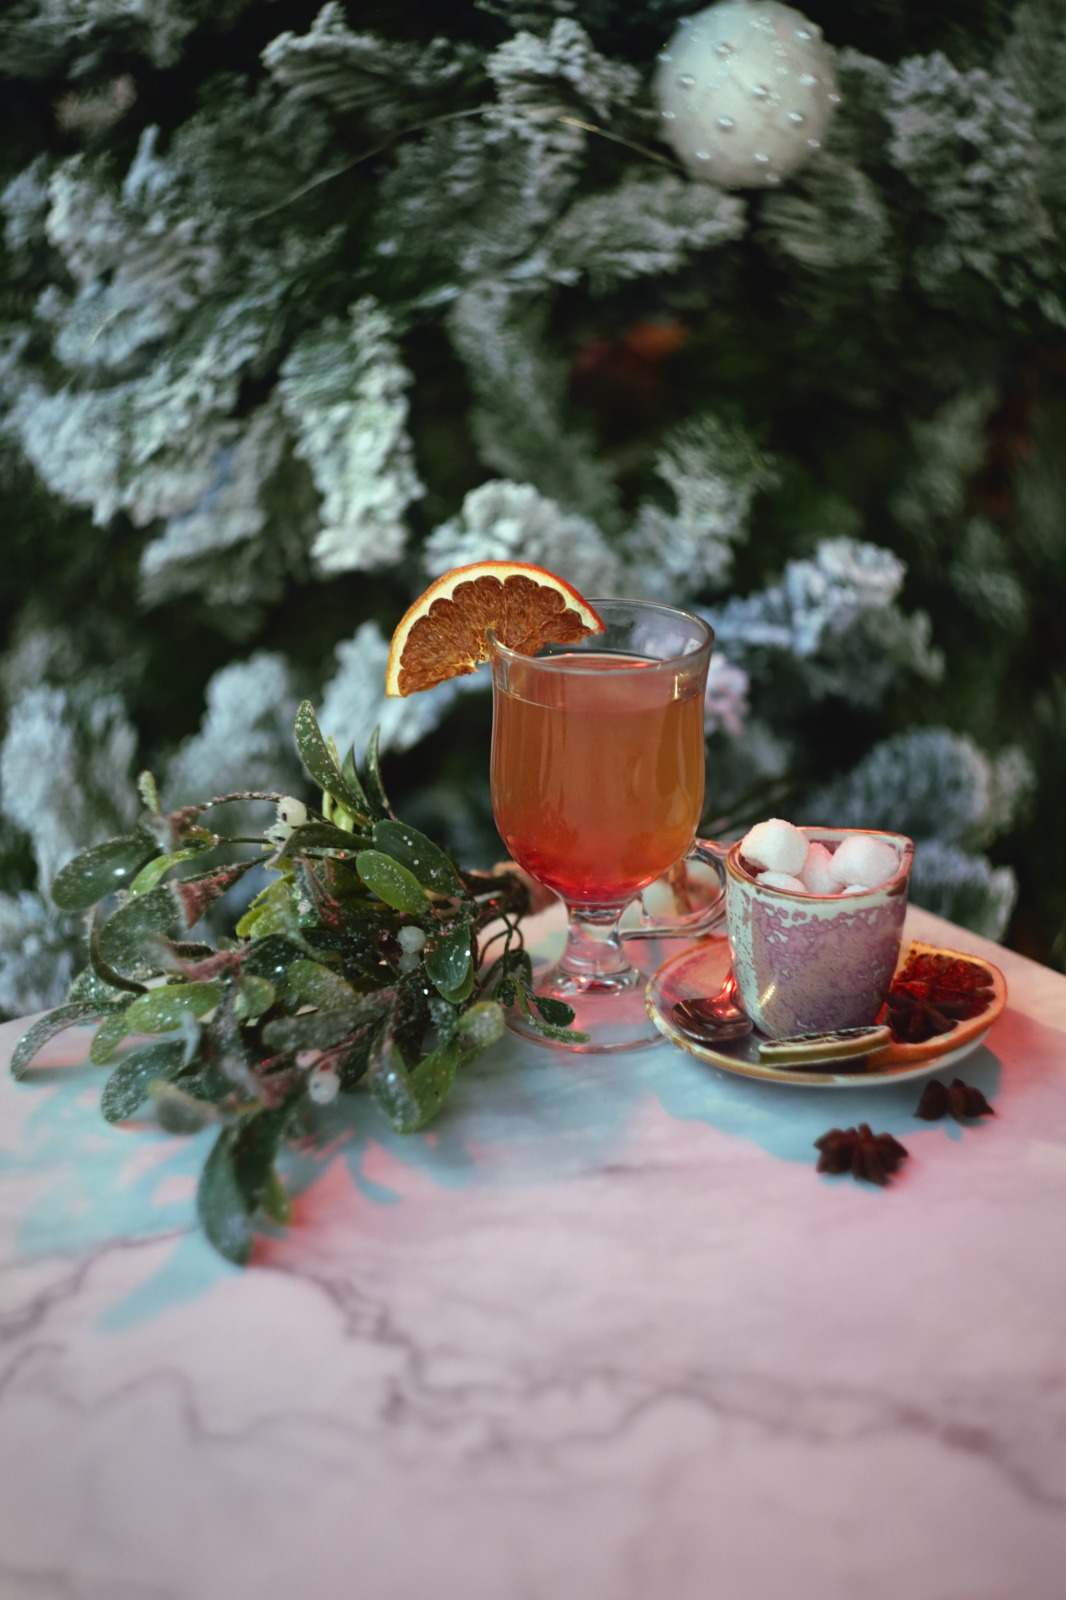 THE MUPPETS CHRISTMAS CAROL: Boozical Brunch